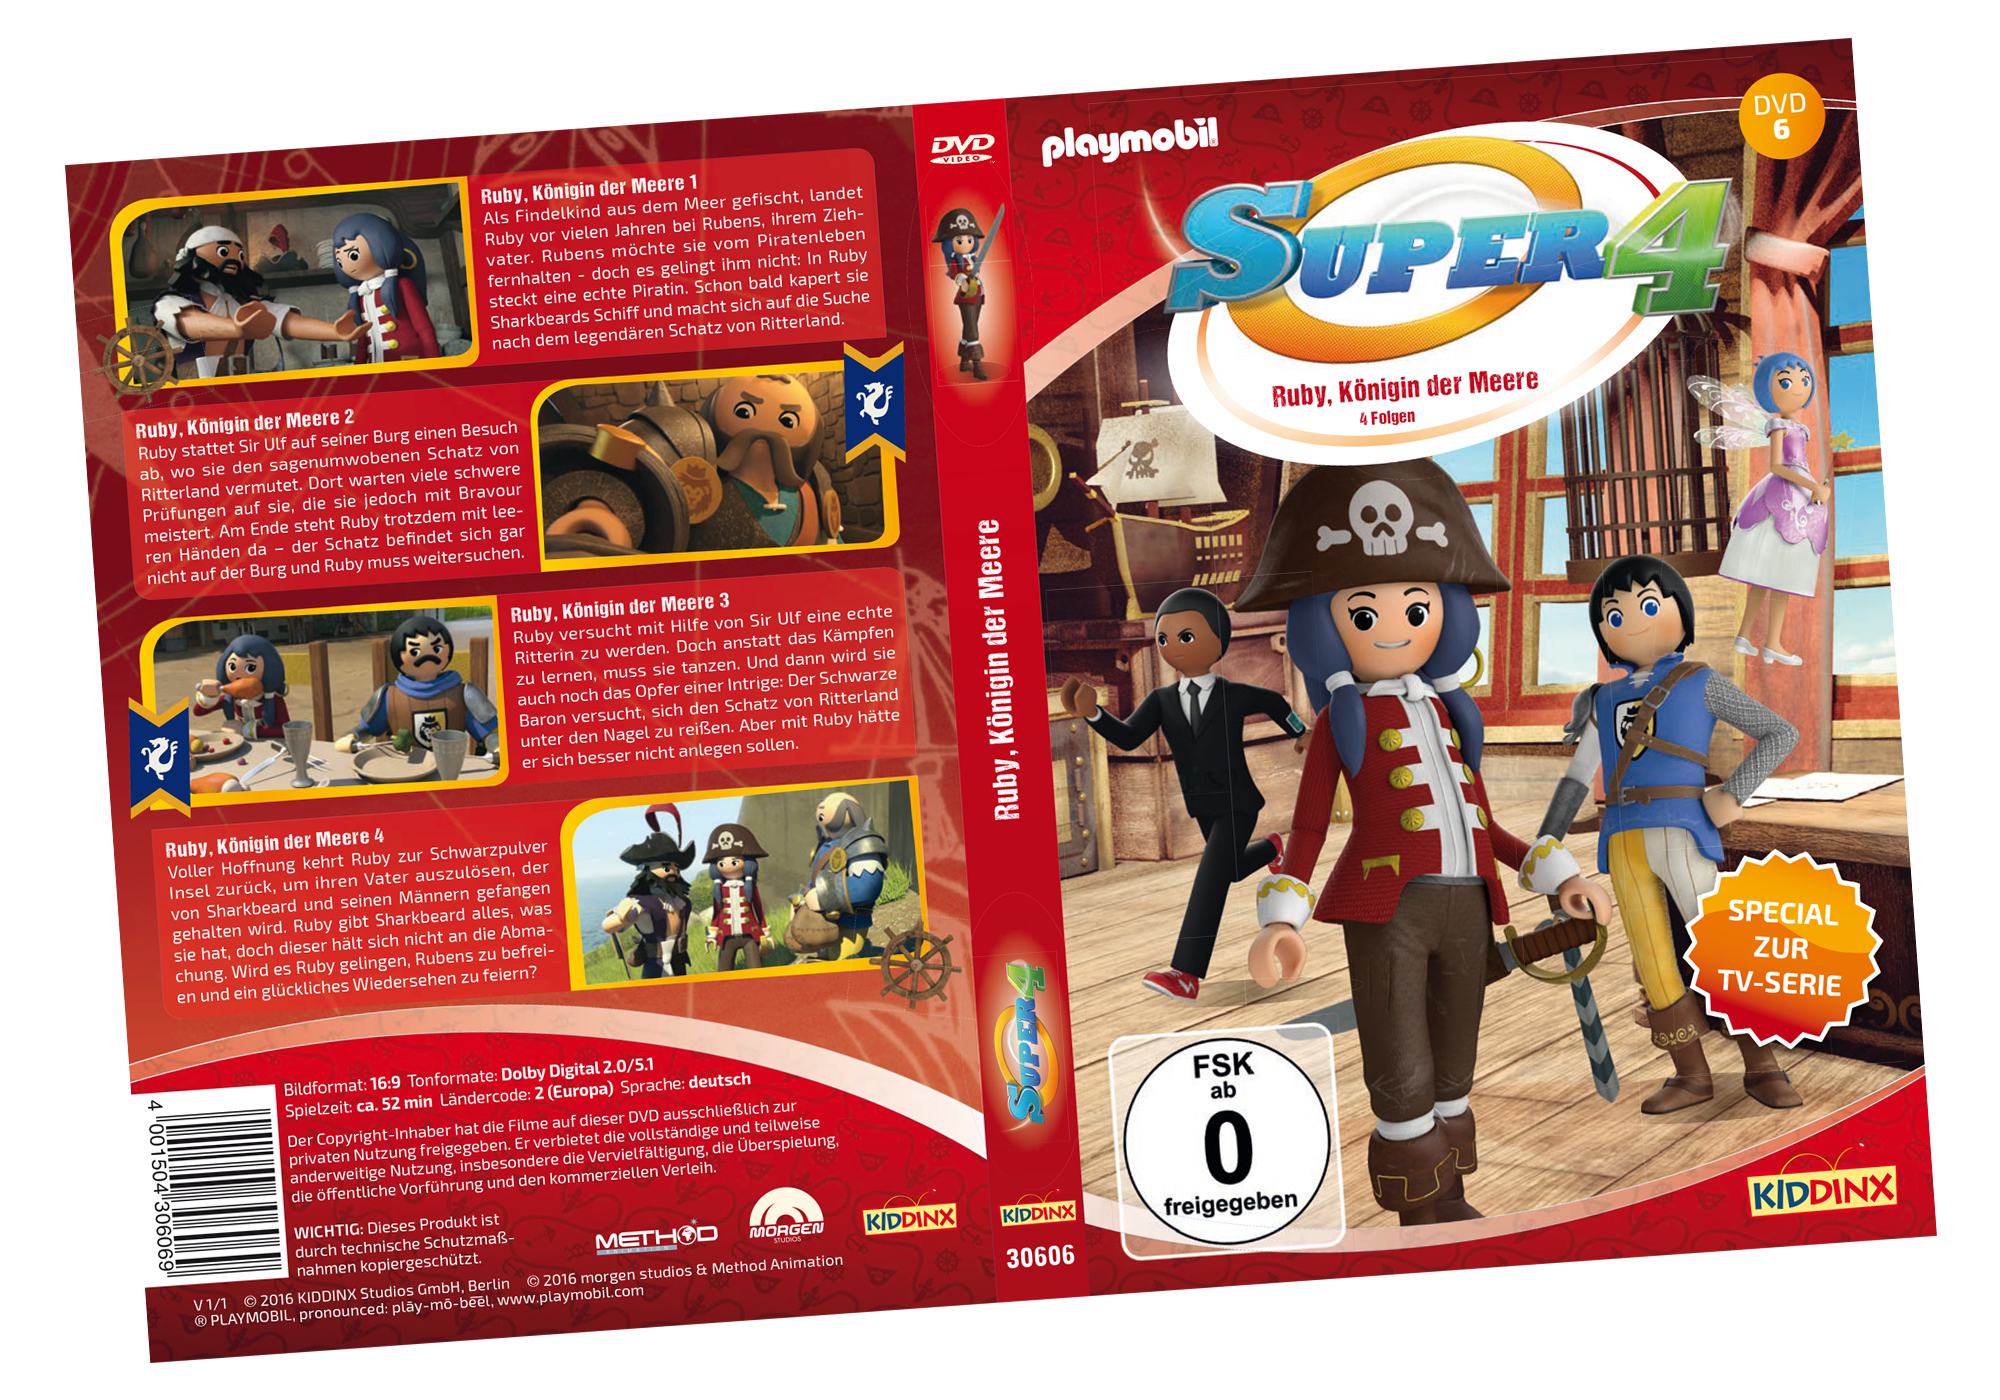 http://media.playmobil.com/i/playmobil/80481_product_detail/DVD 6 Super4: Ruby,Königin der Meere